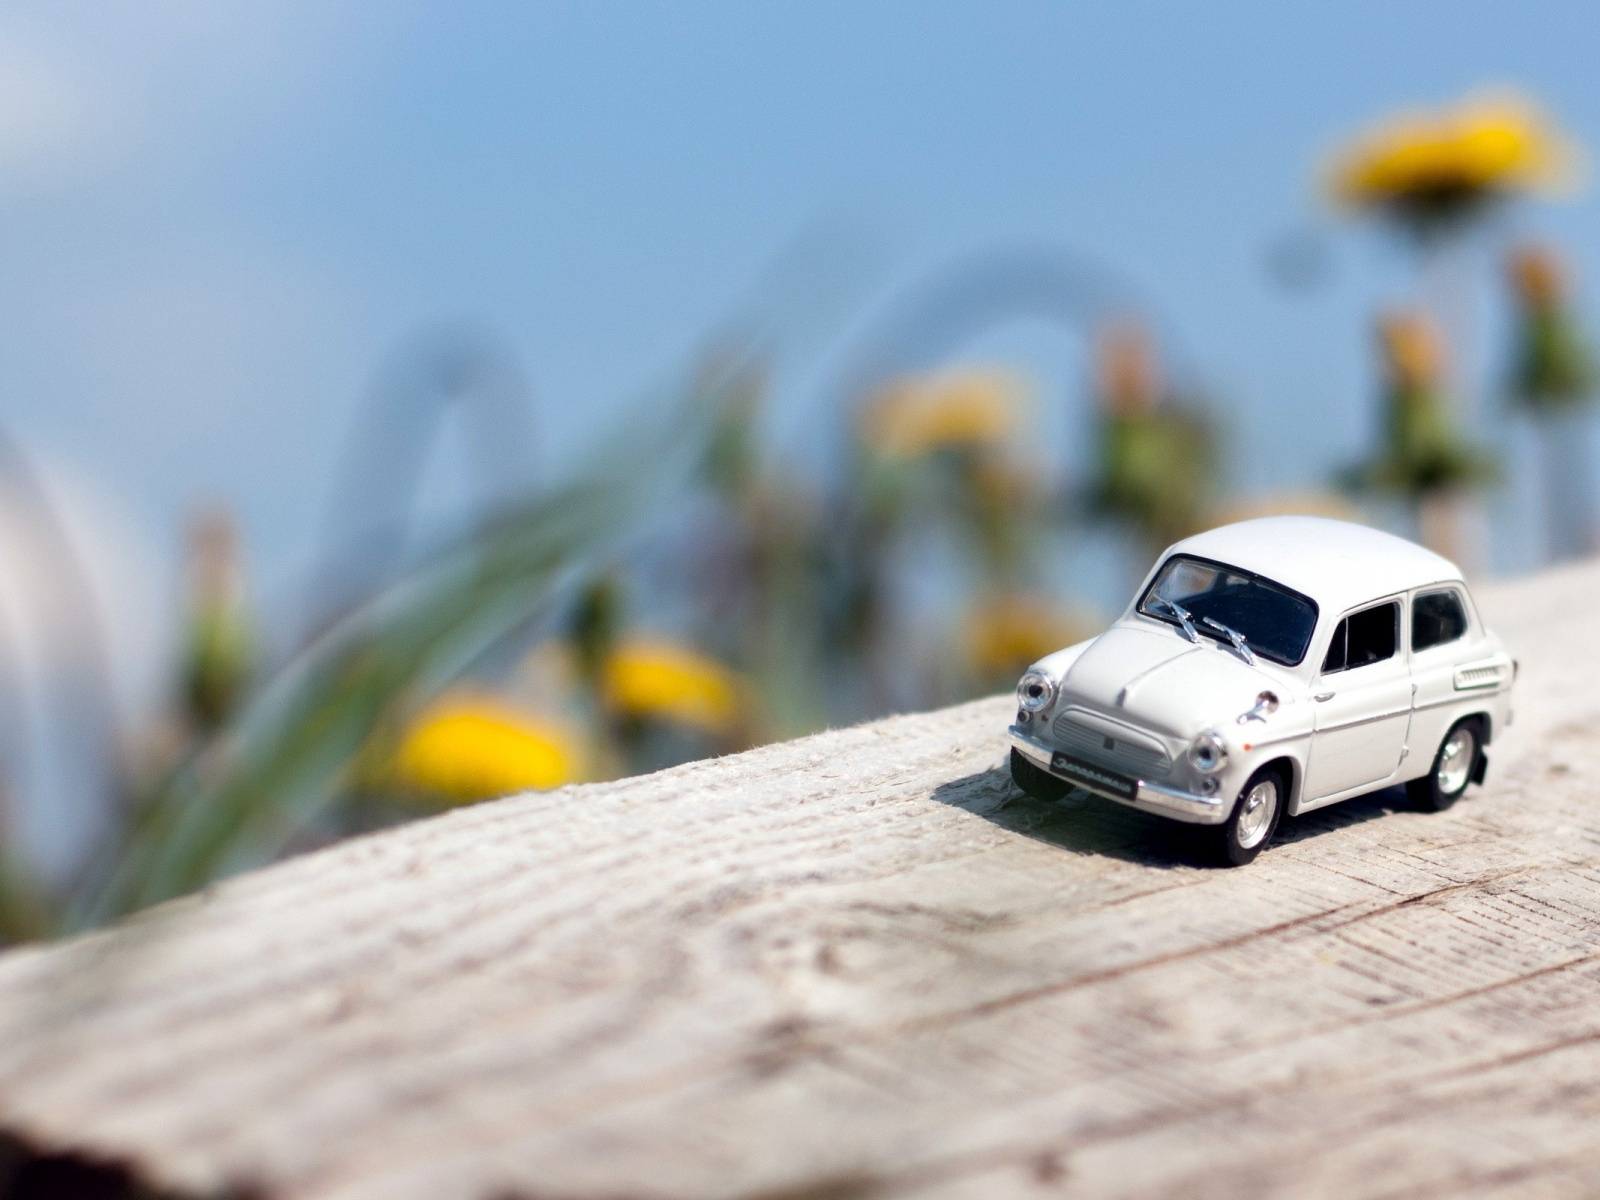 Toy Car Wallpapers 39195 1680x1050 px